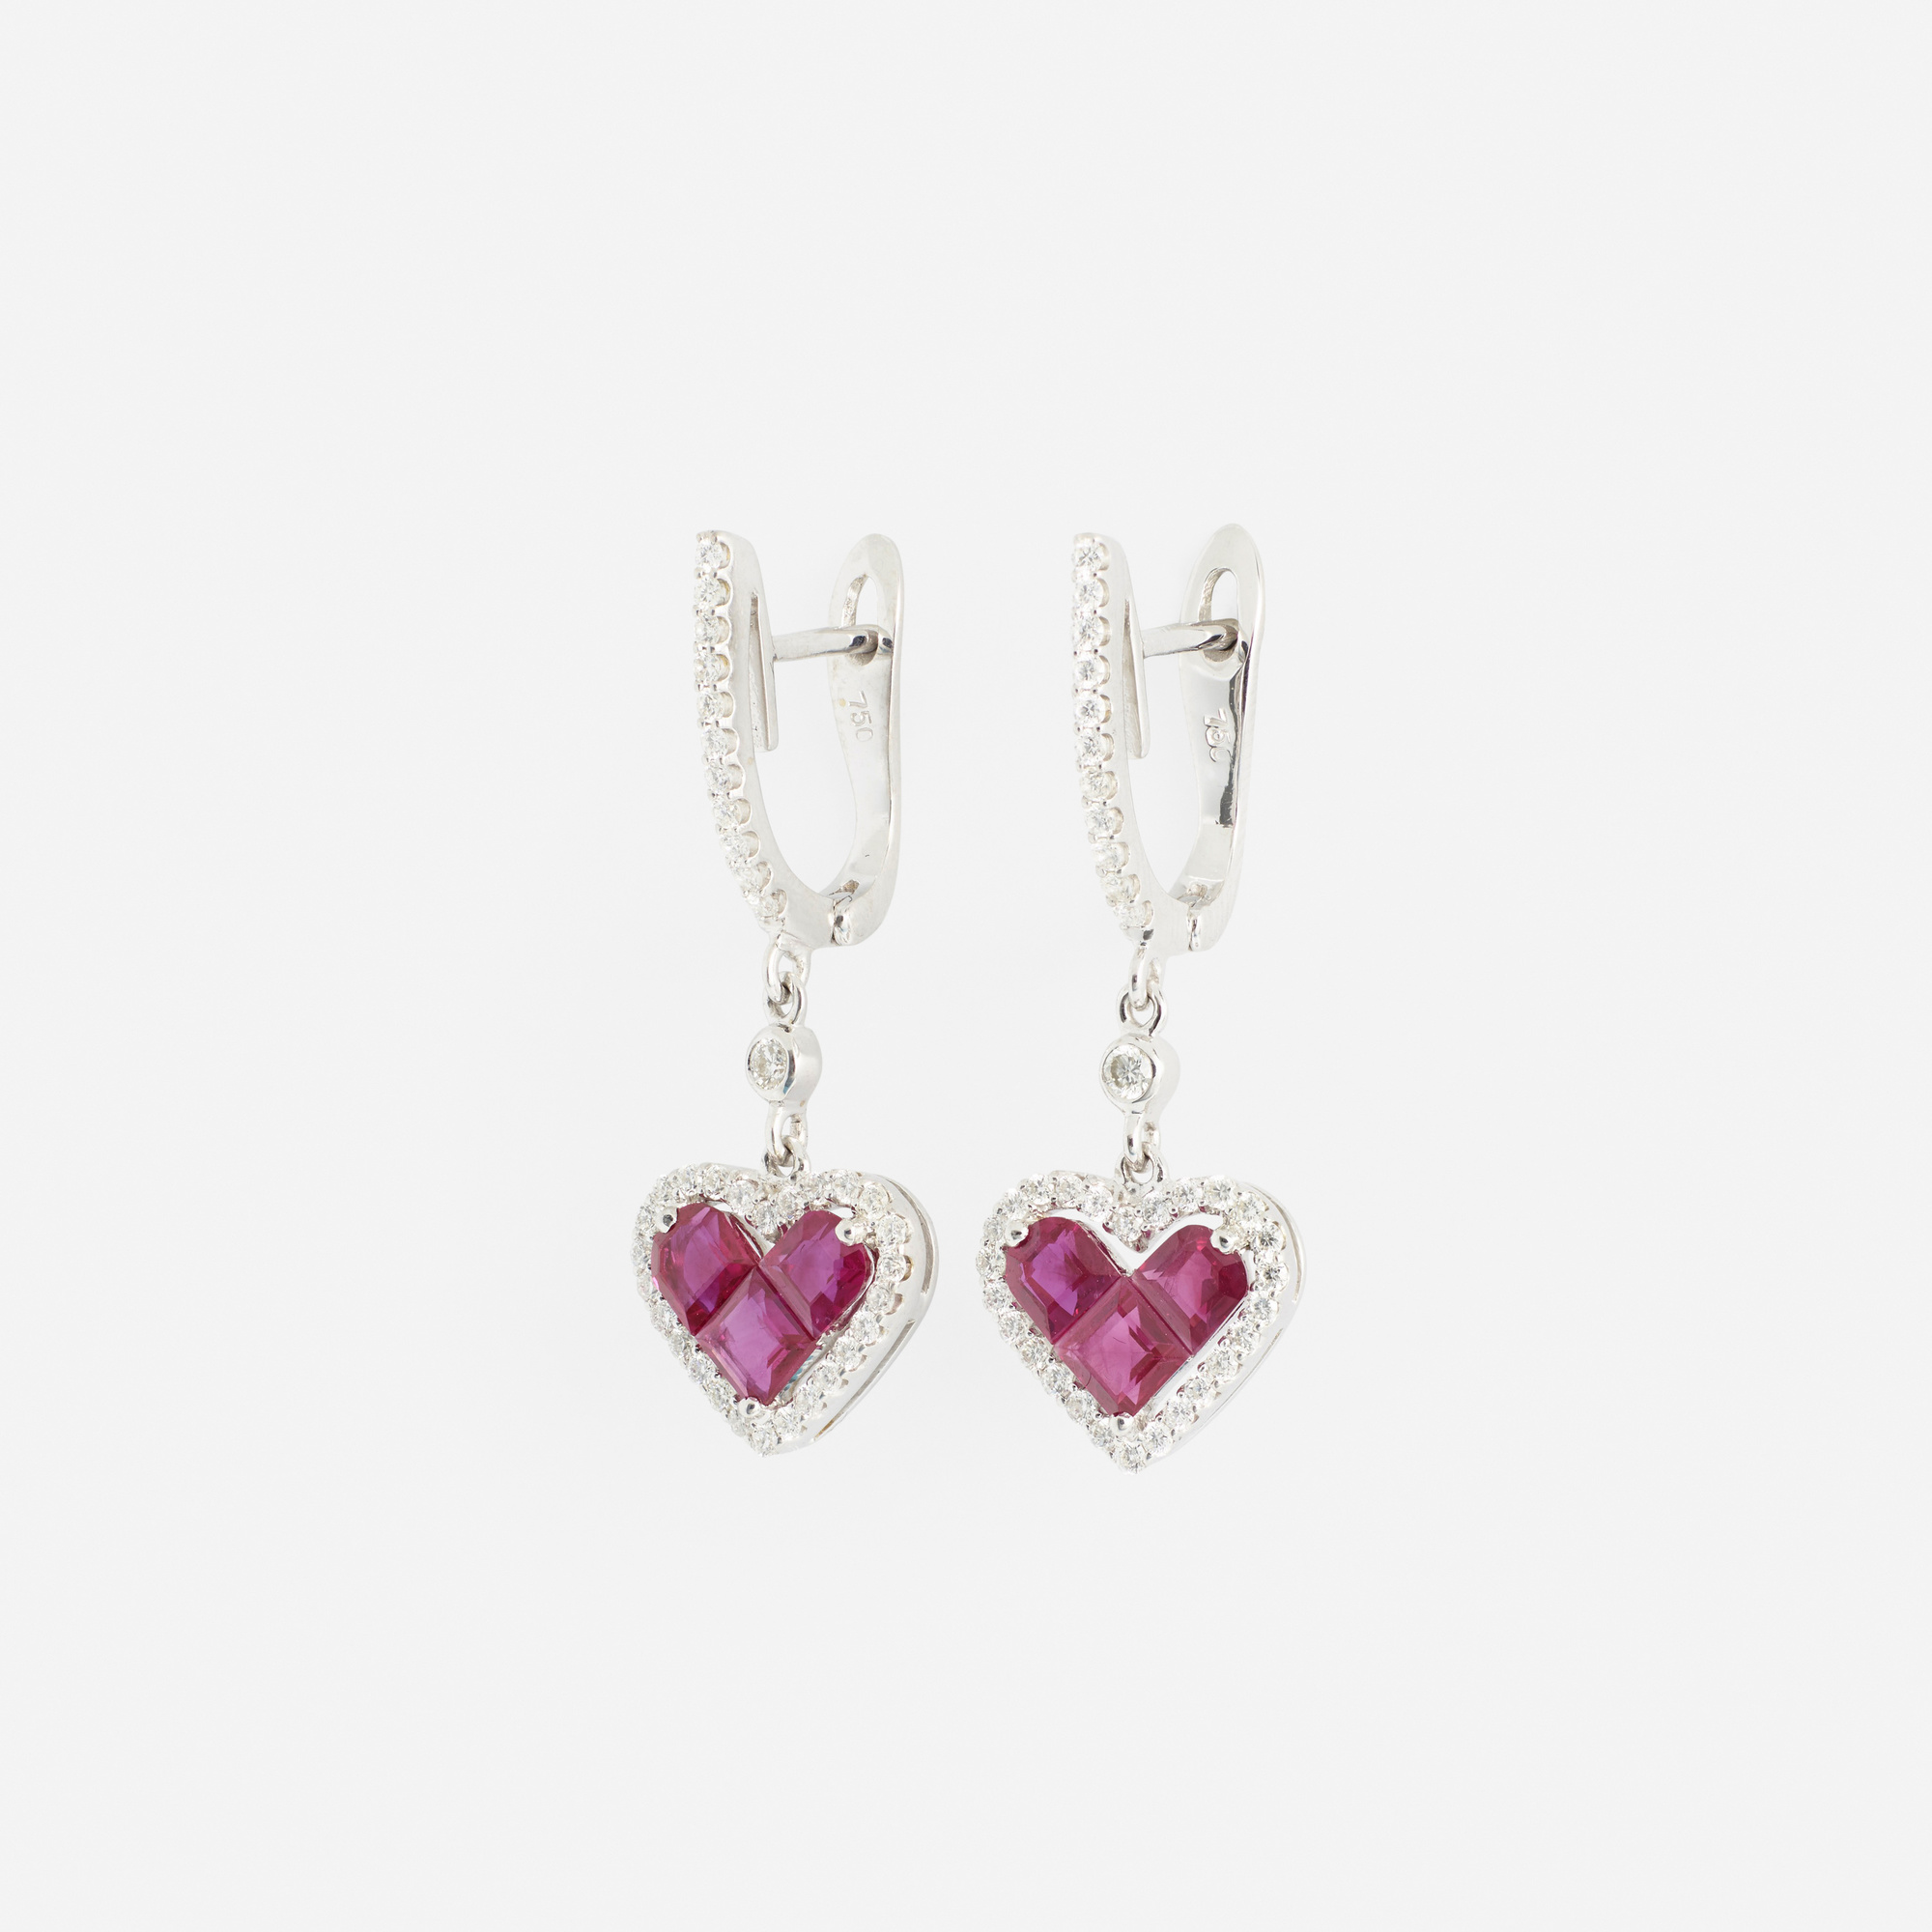 152:  / A pair of gold, diamond and ruby earrings (2 of 2)